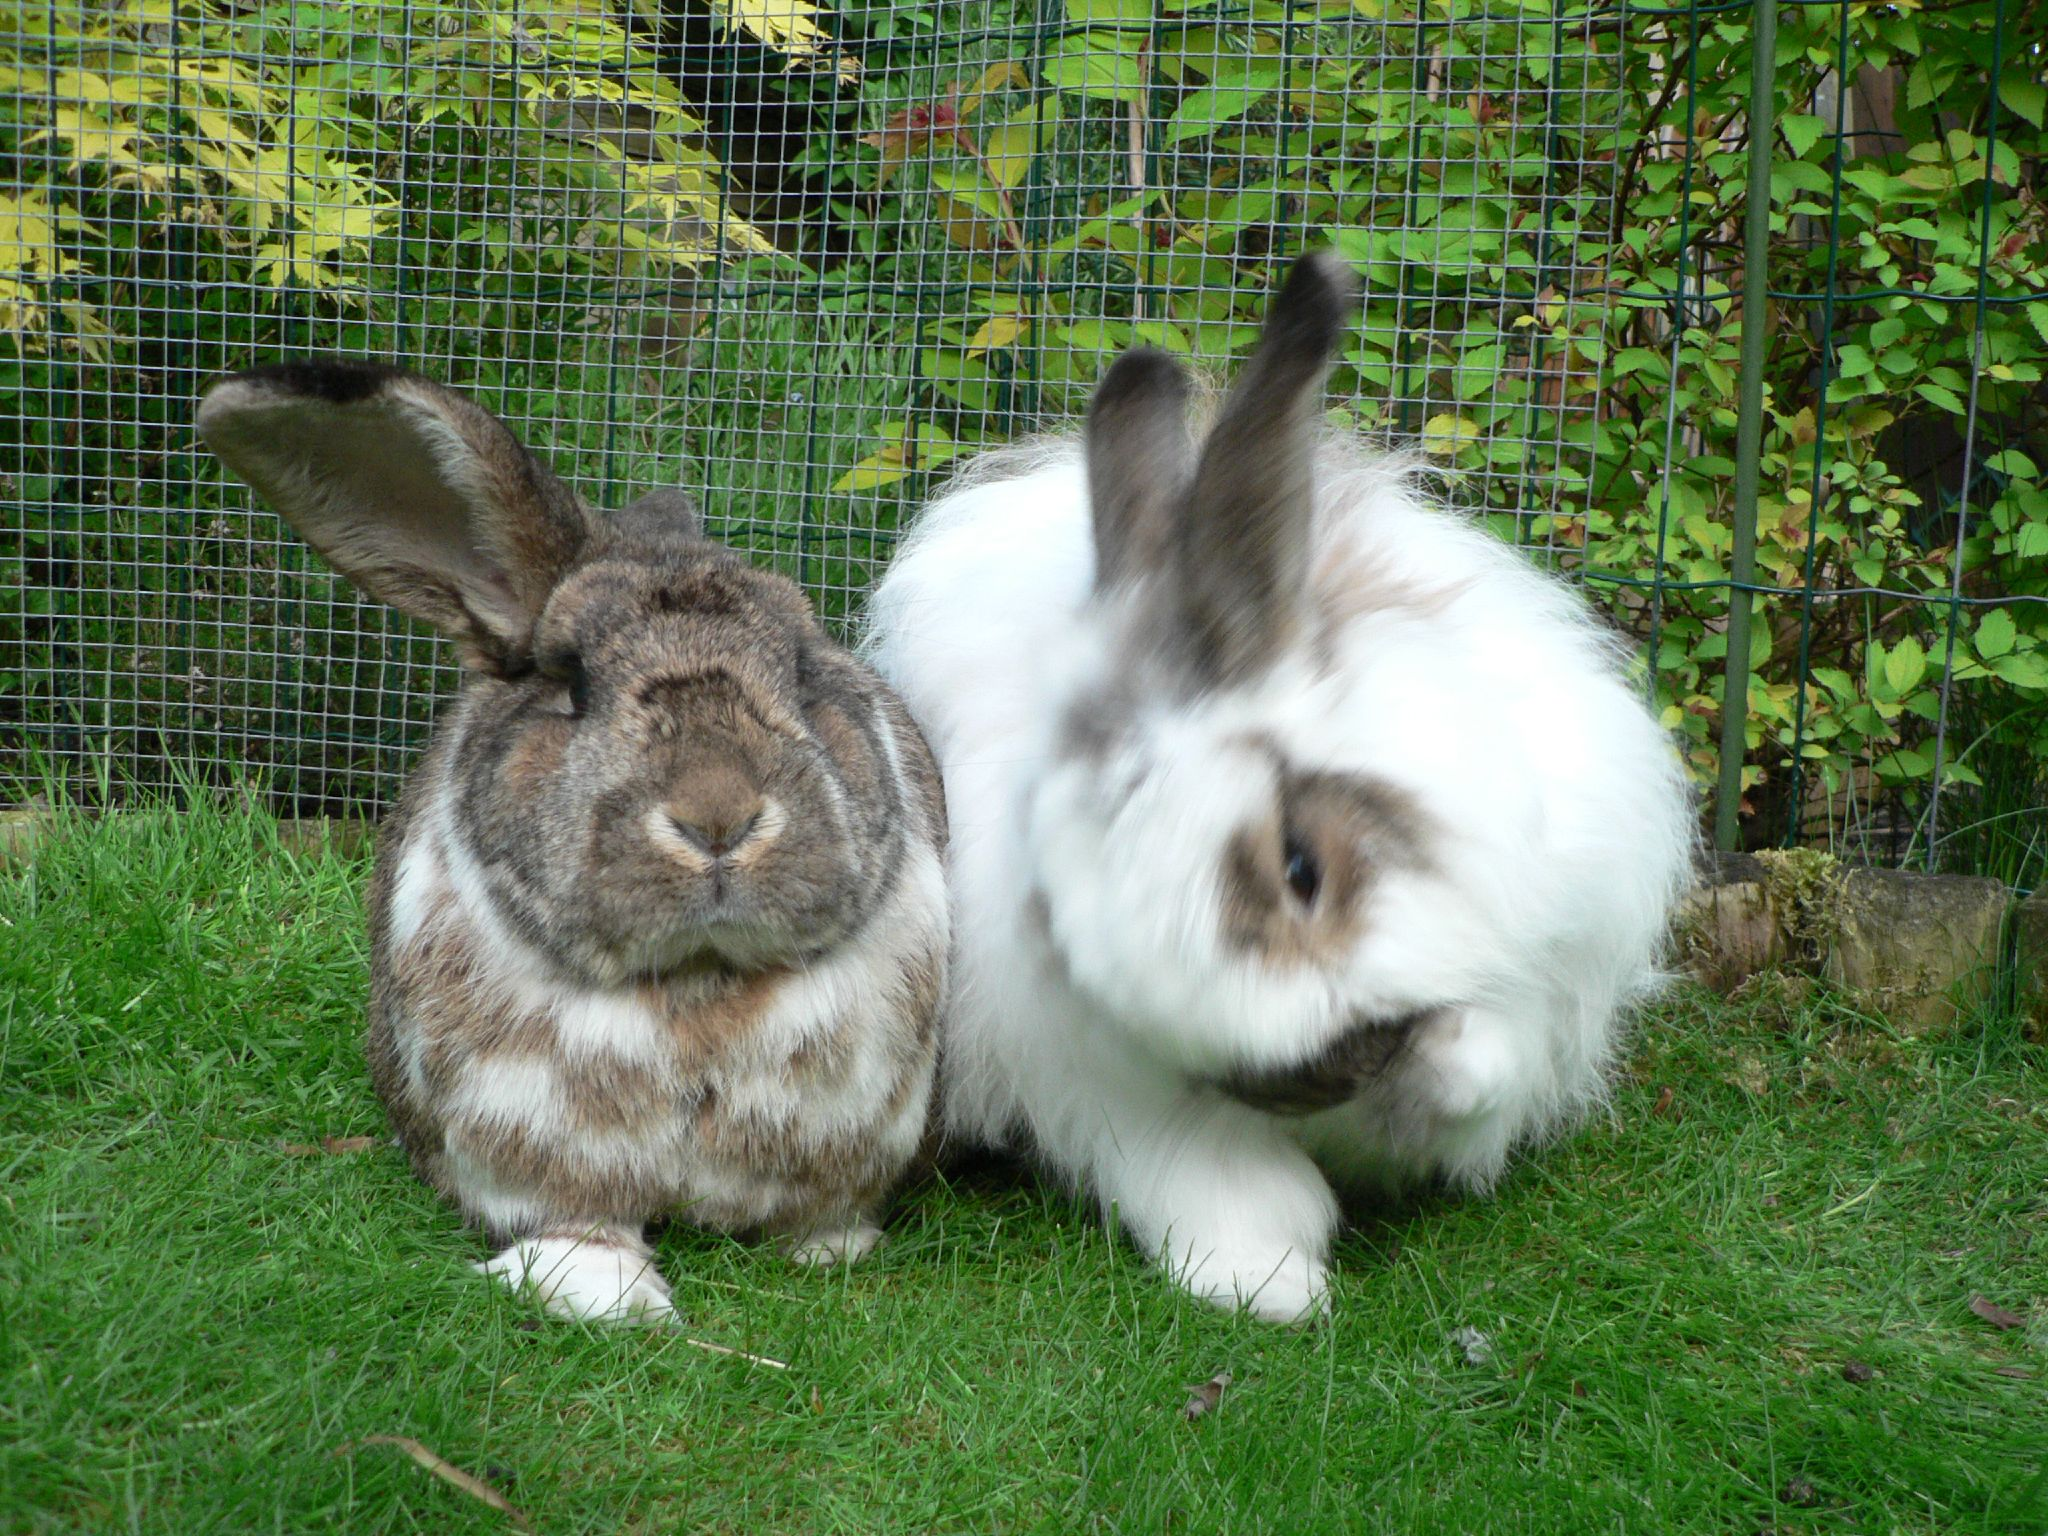 Raising Meat Rabbits To Save The World